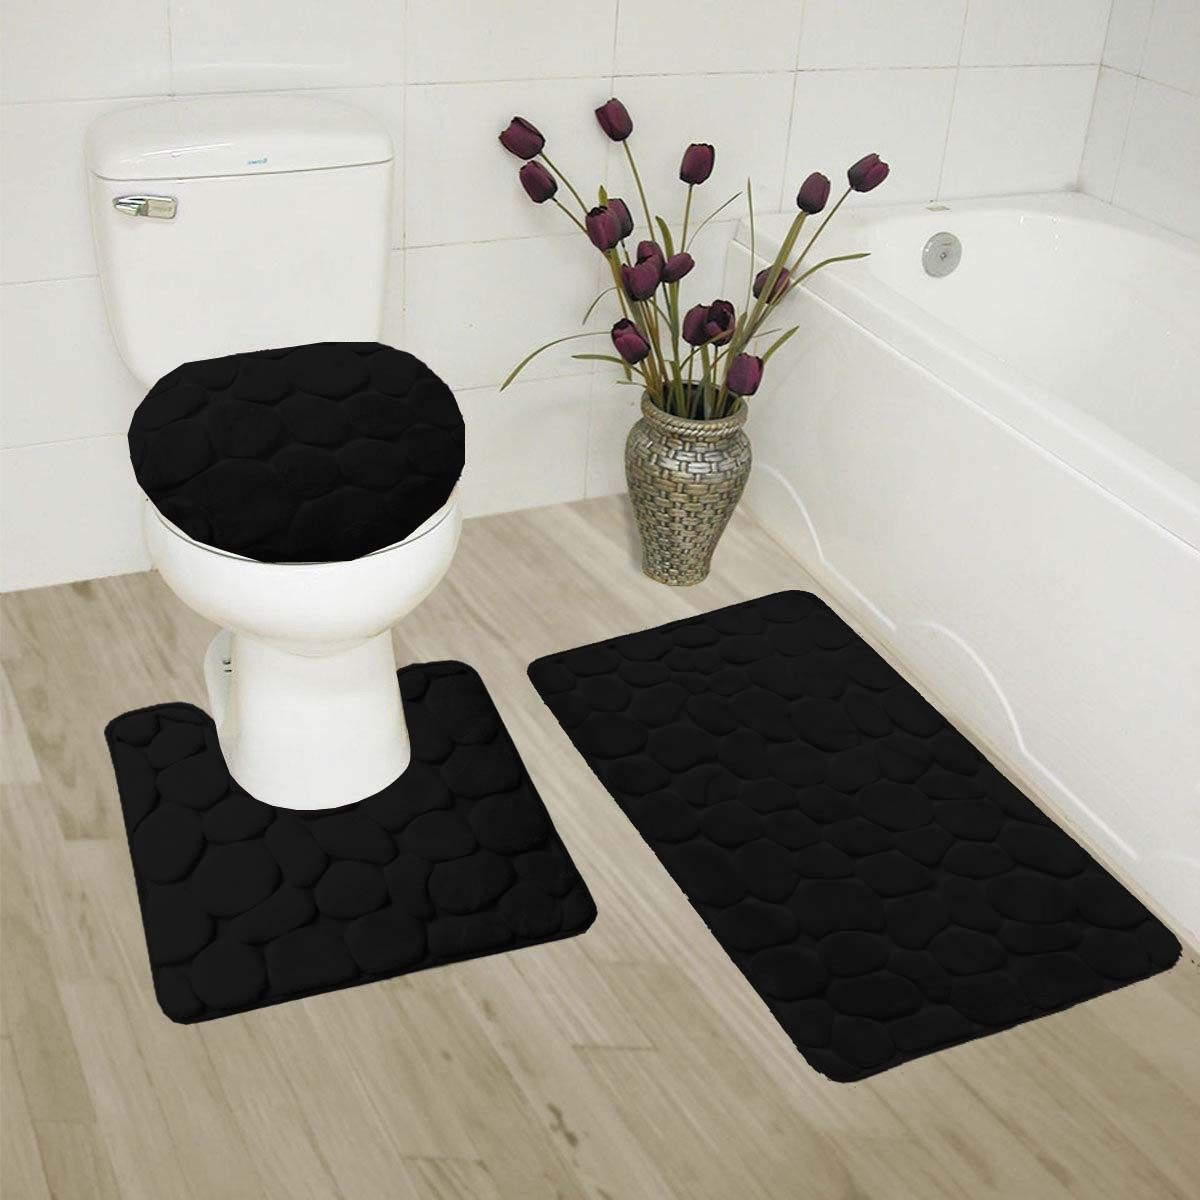 Bathroom Rugs Mats For Women Men Clearance 5-Piece Set Foam Extra Soft Non-Slip